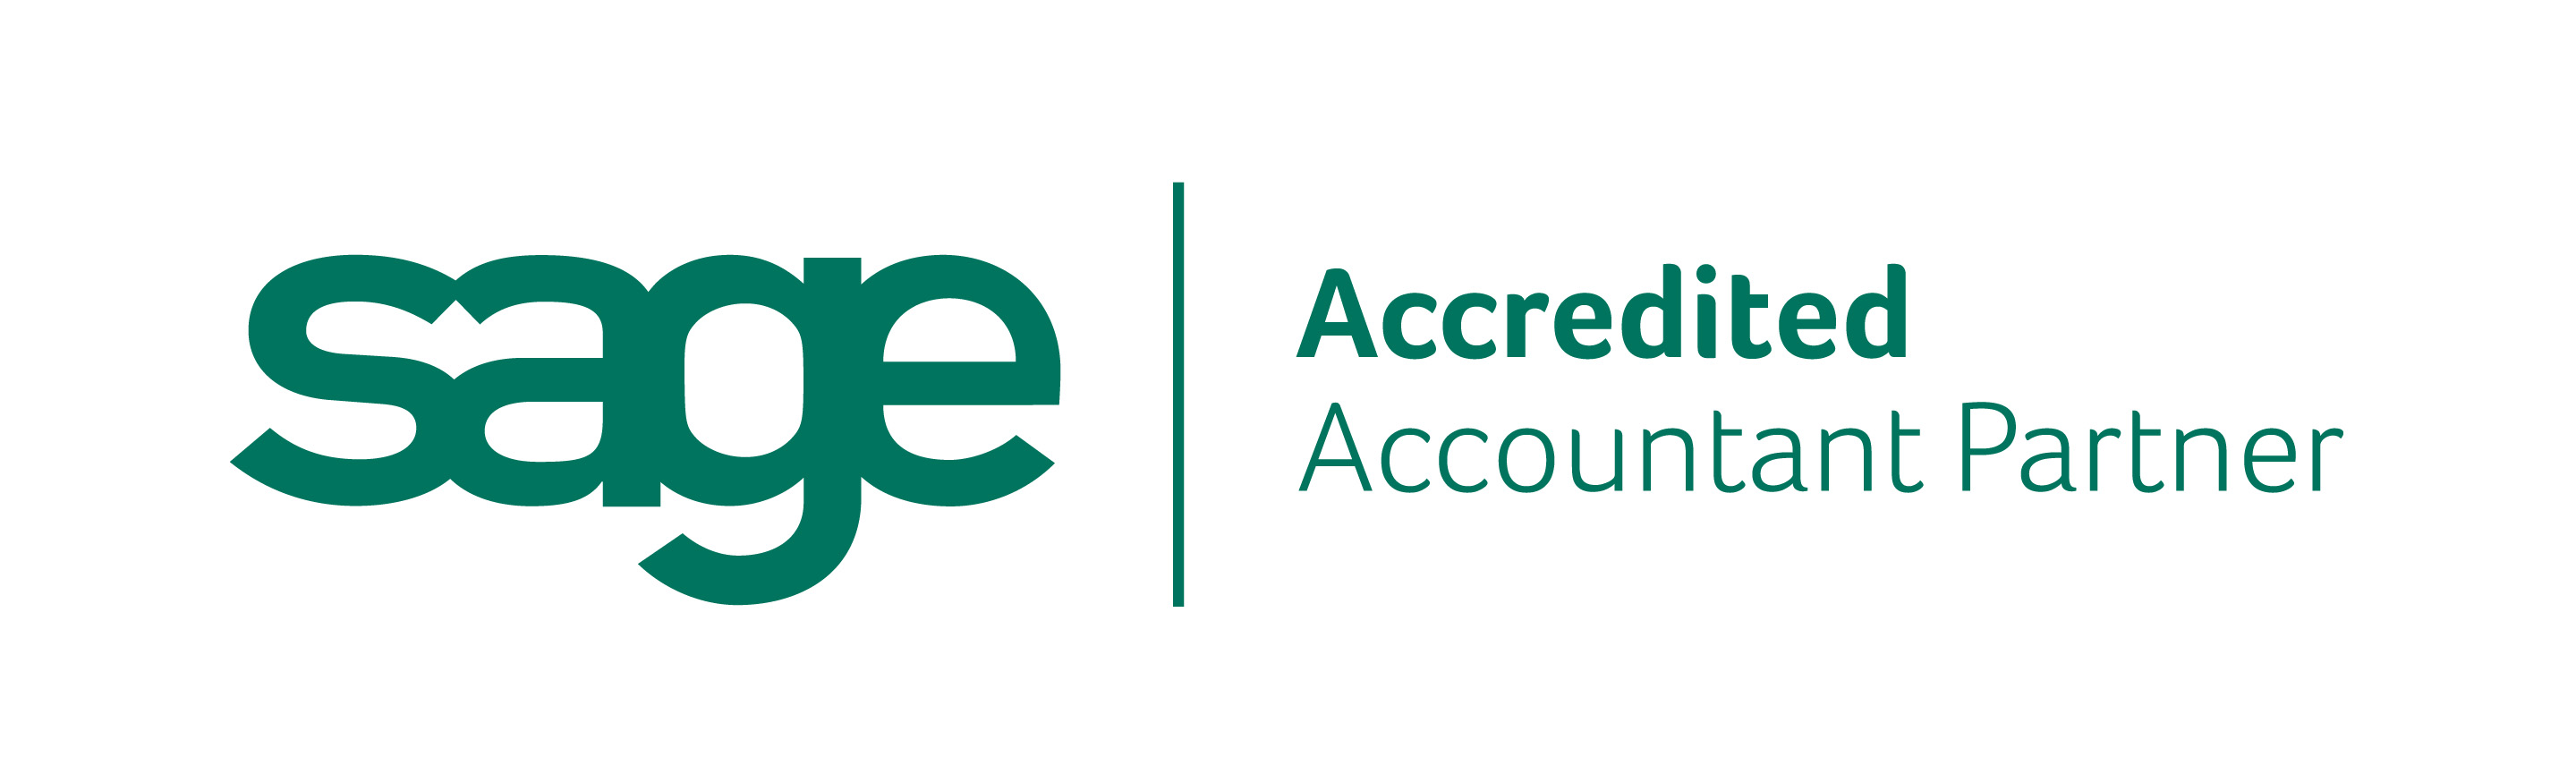 sage-accredited-accountant-partner-logo